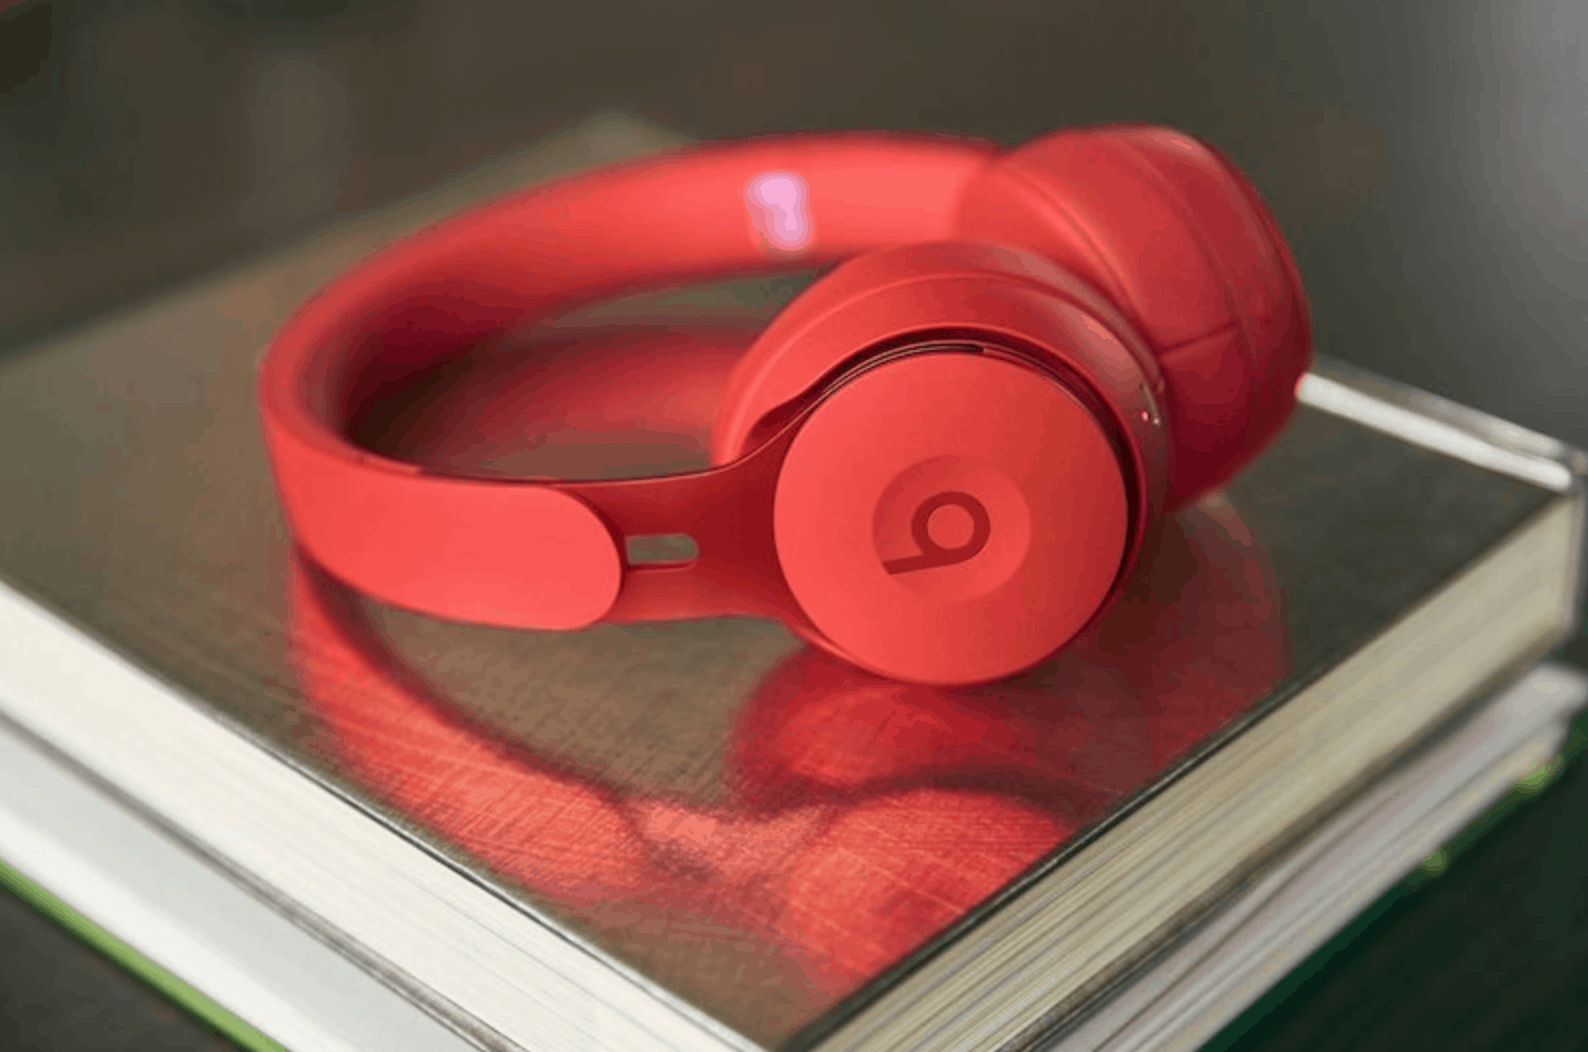 Apple Beats Solo Pro Priced at $300, Available October 30